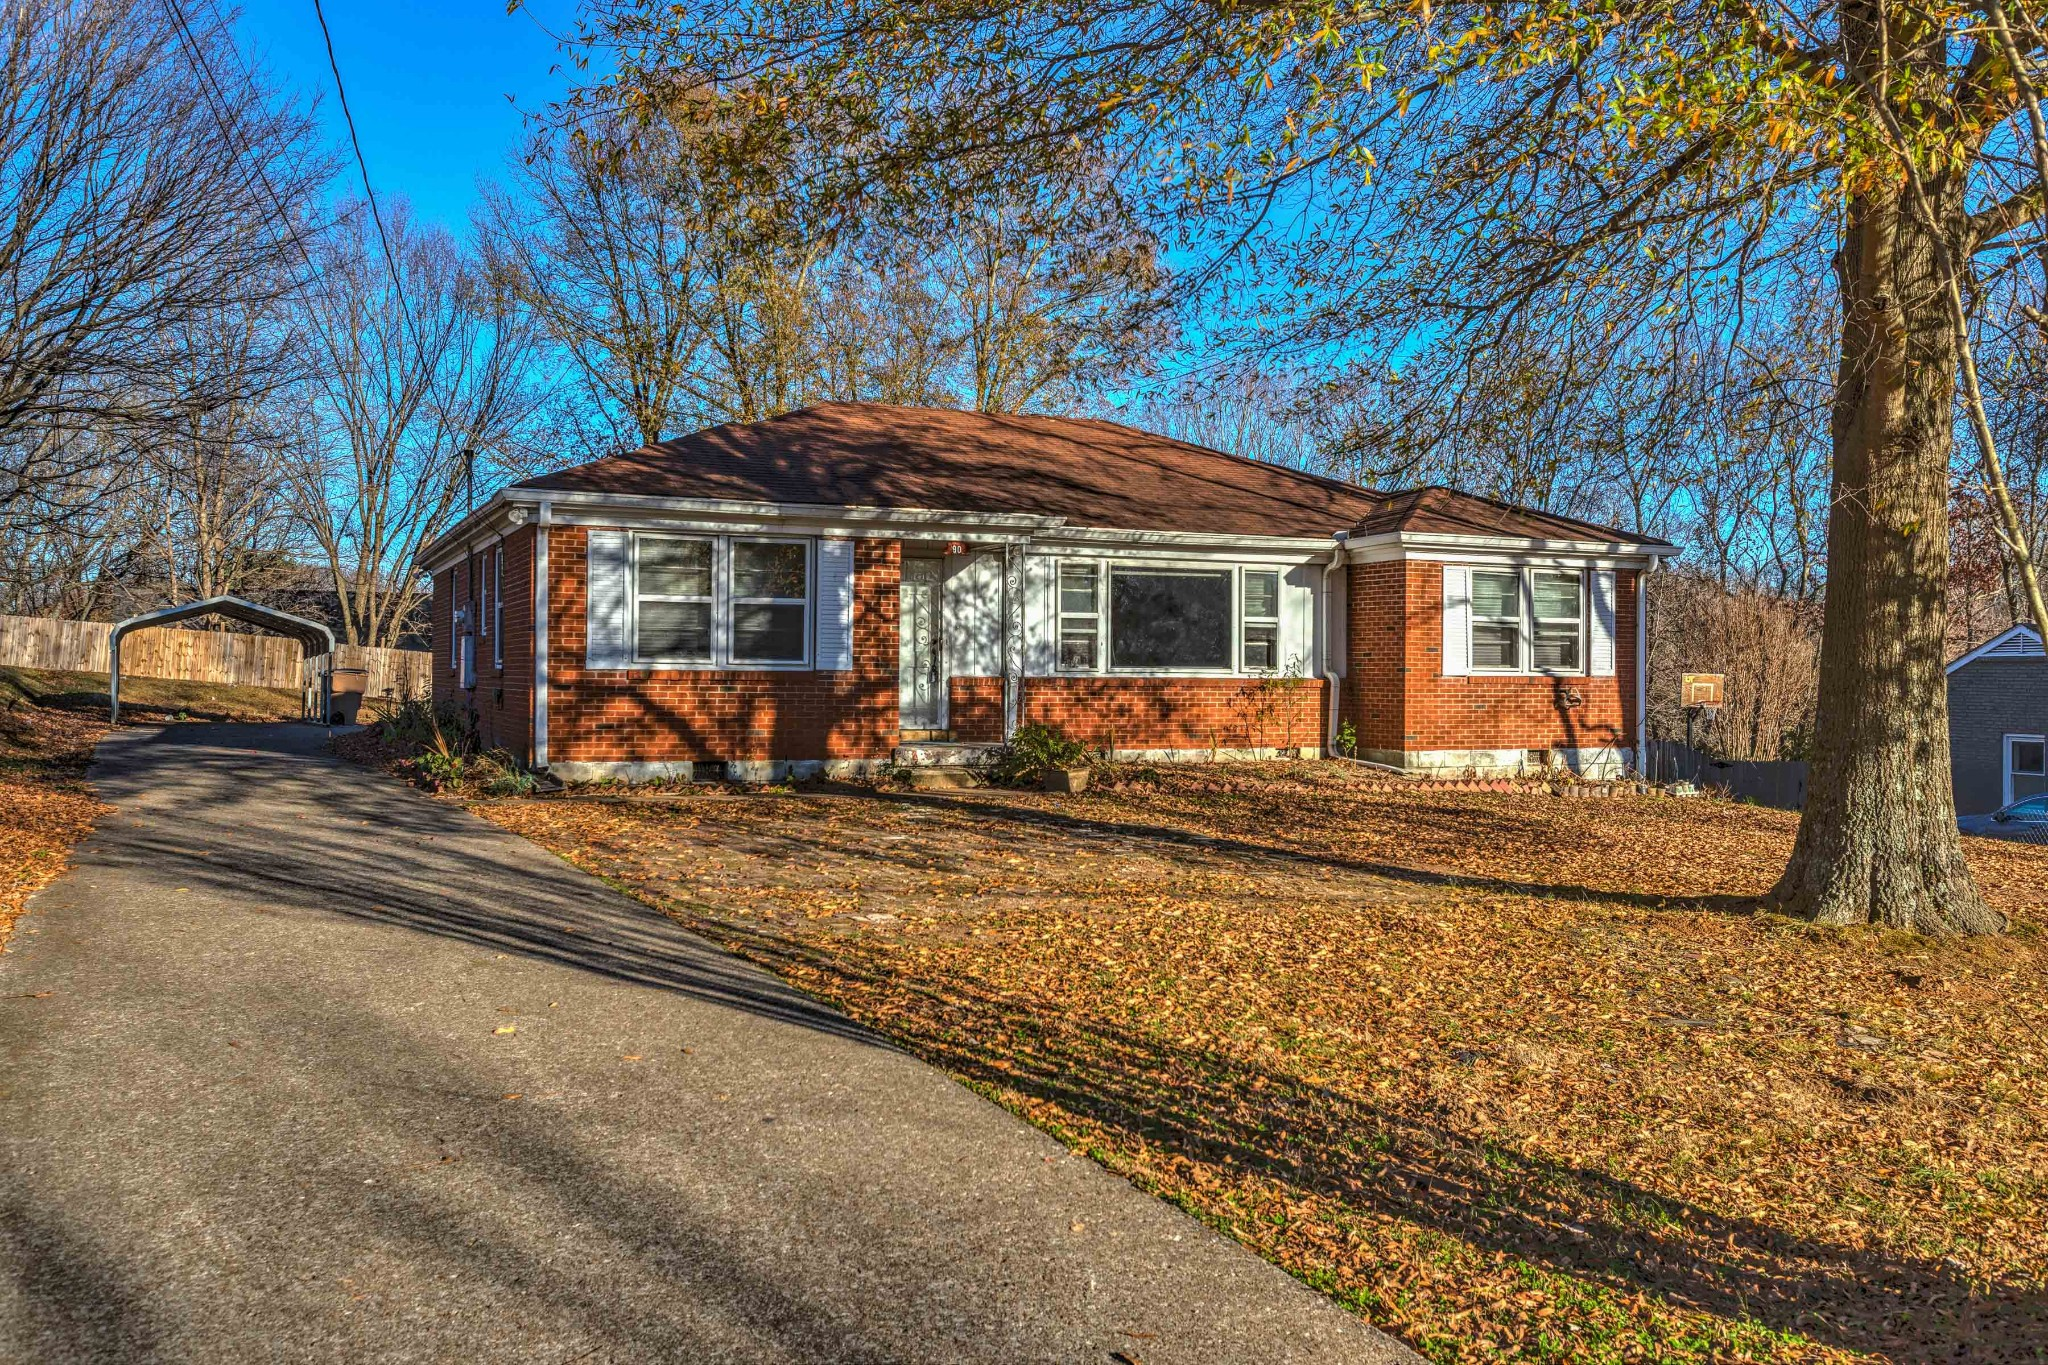 Location! Location! Close to downtown and airport. Extra large living room with hardwood flooring through out the house. Newly built deck, AC replaced in 2016, HVAC 2015.